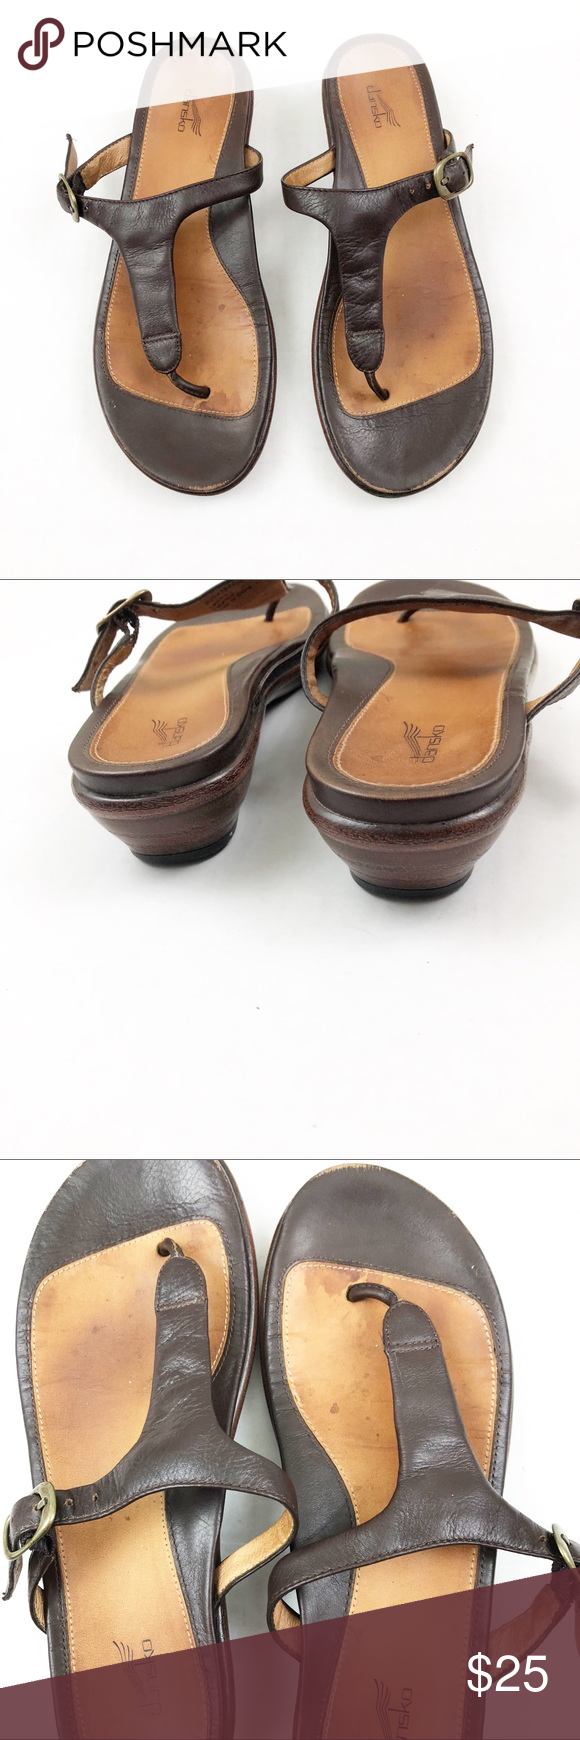 c49475b44a29 Isola Tan Suede Heels Isola tan suede heels. Great condition! Super comfy  heels. Color is a tan suede. Size 6. Isola Shoes Heels